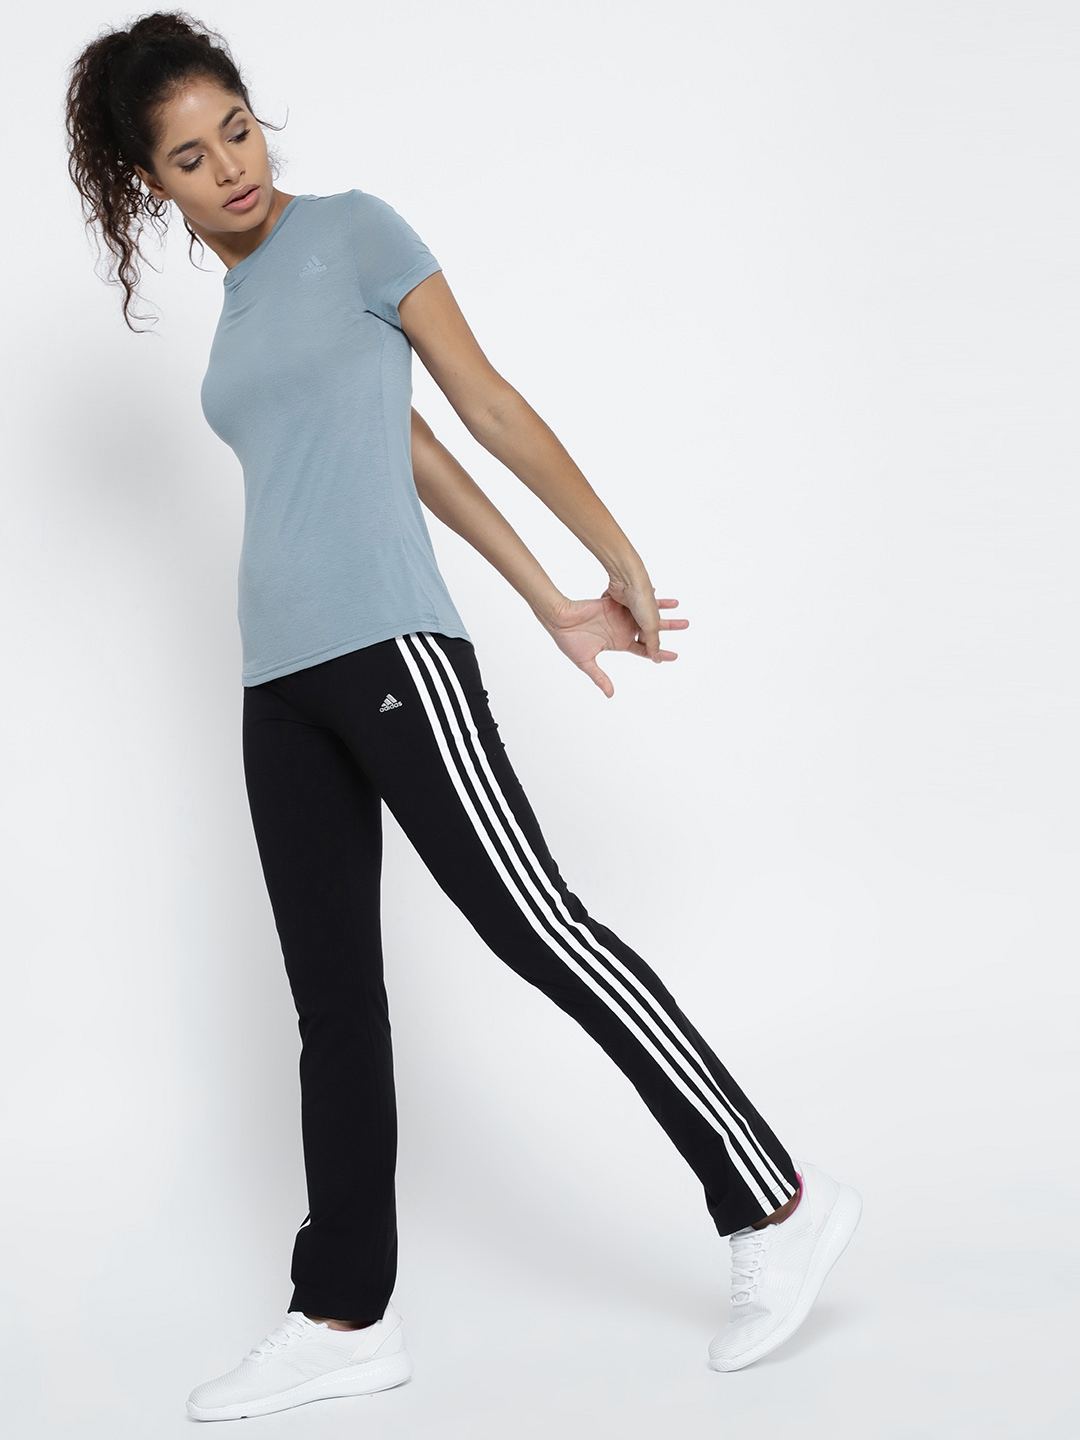 7dab3ea6 Buy Adidas Blue Freelift Prime T Shirt - Tshirts for Women 5126133 ...